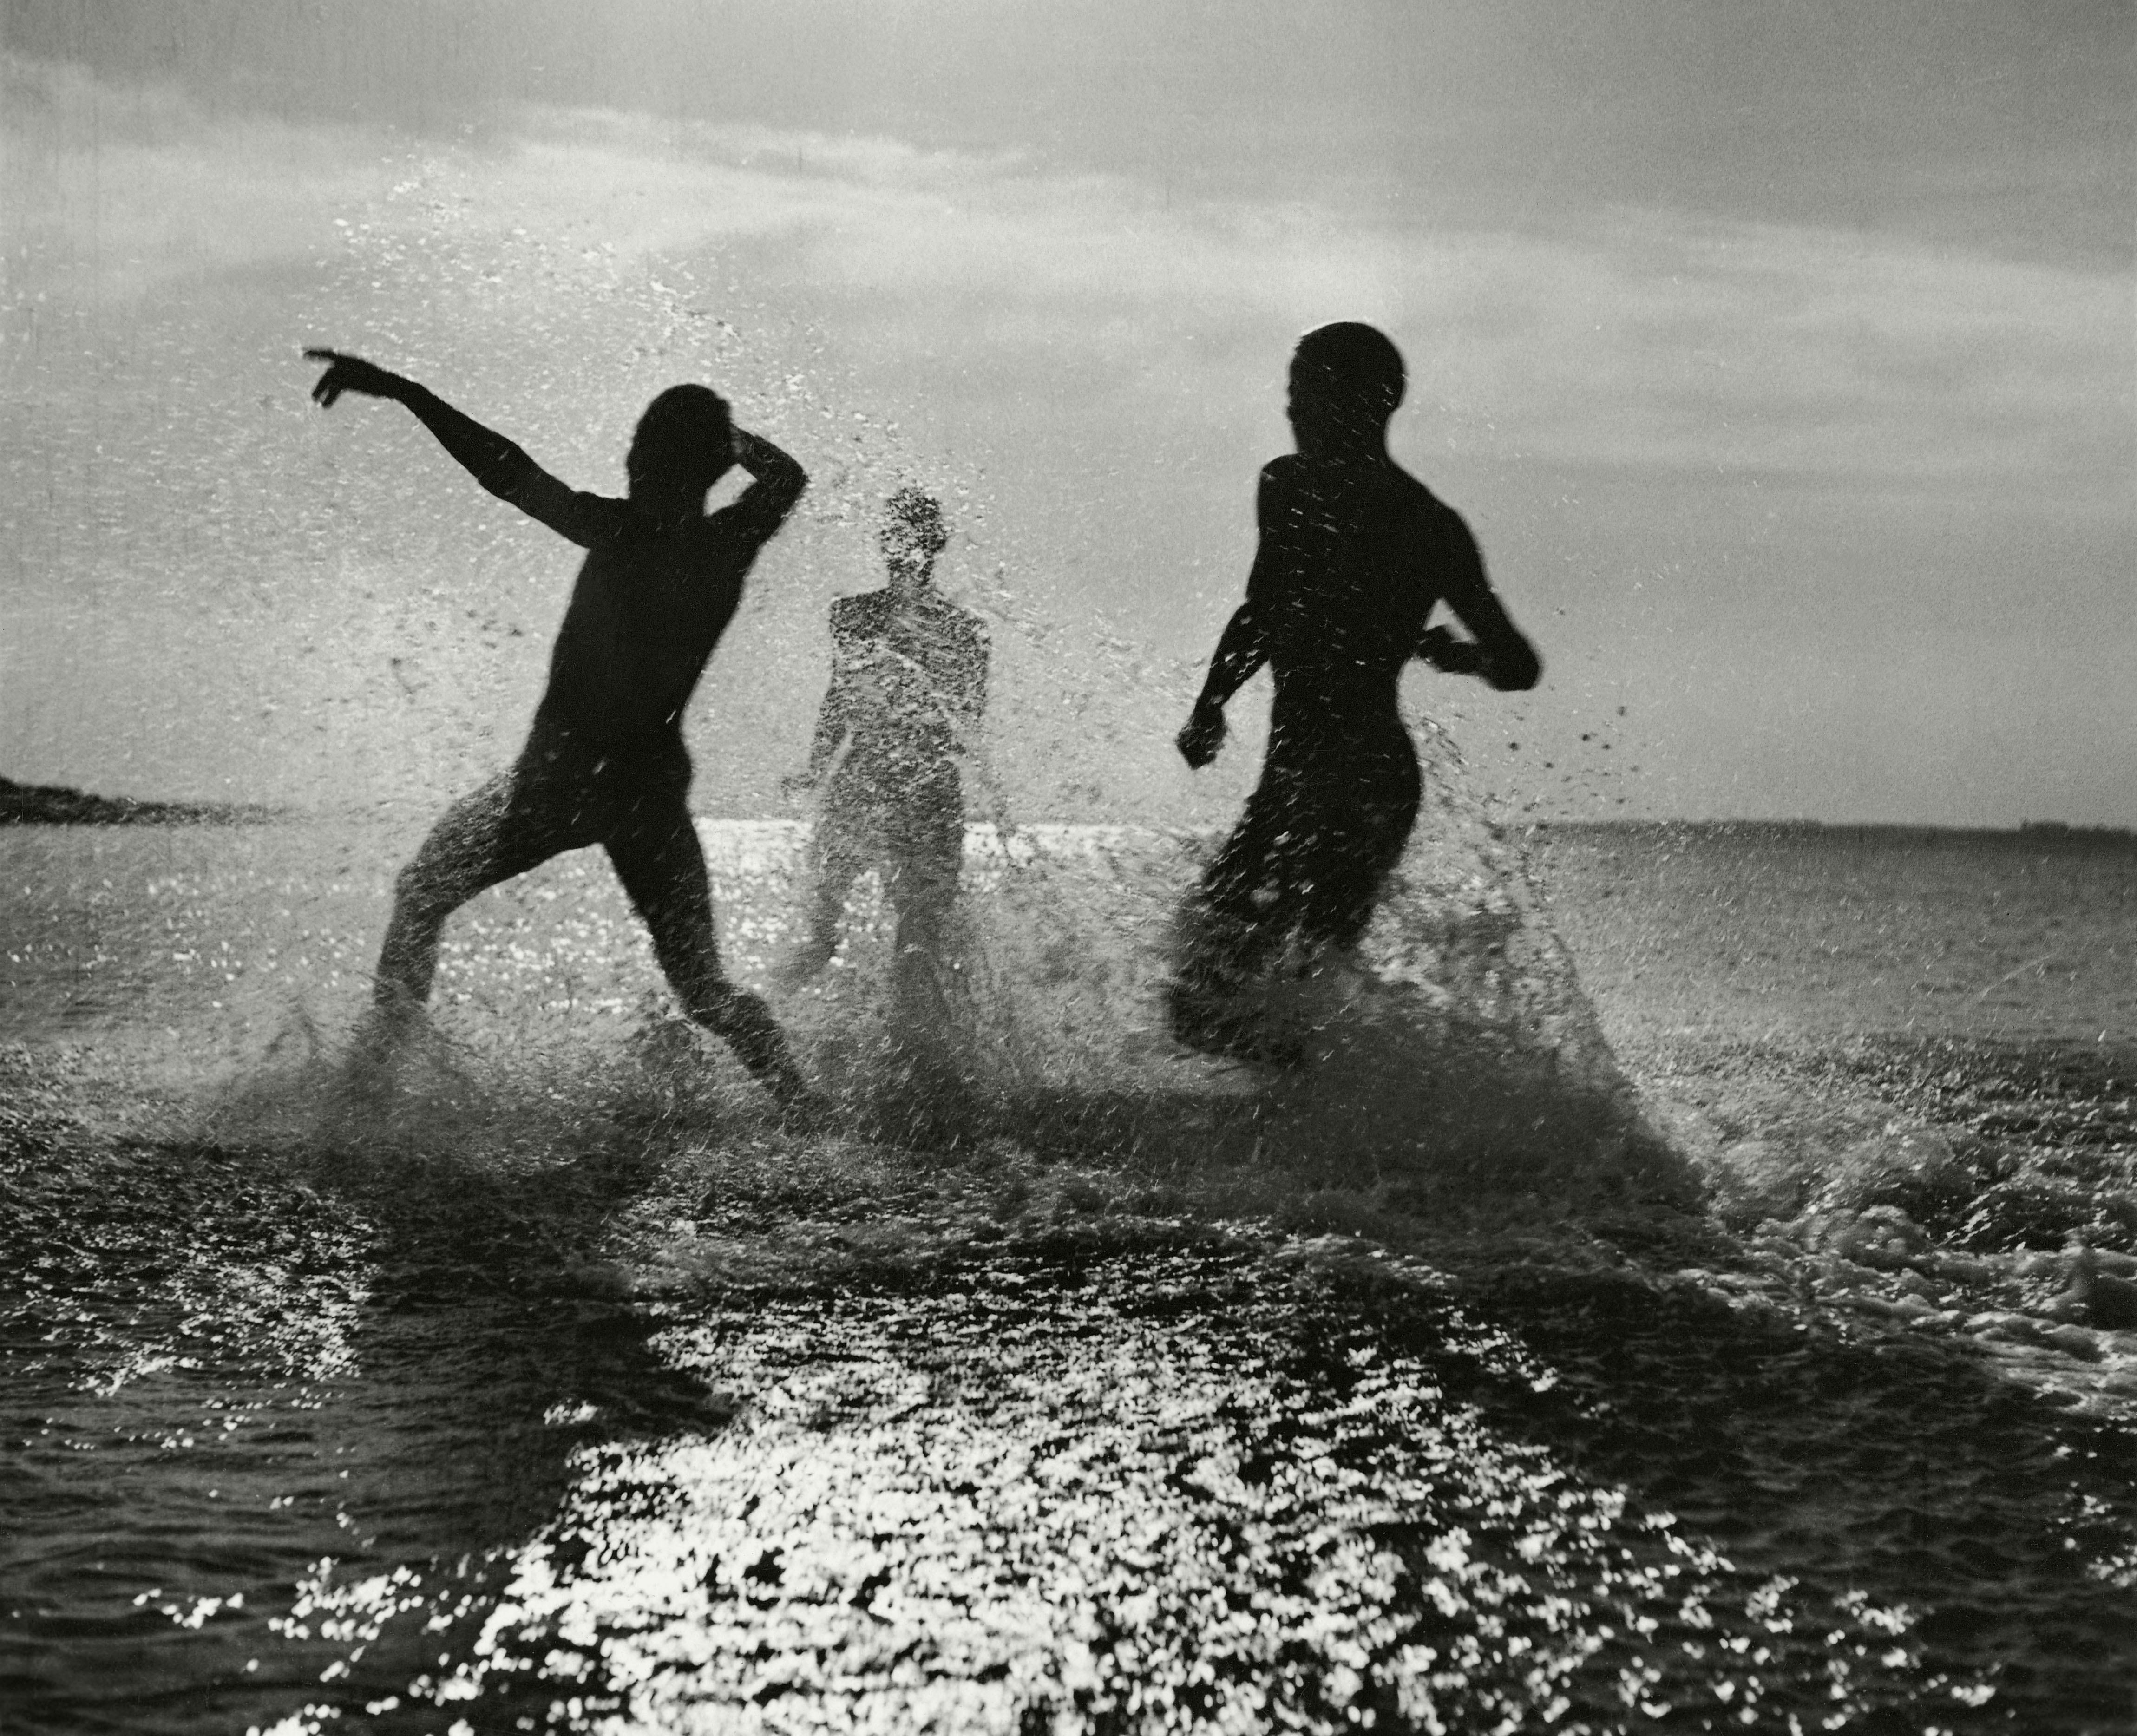 Water games at North Sea by Herbert List 1934